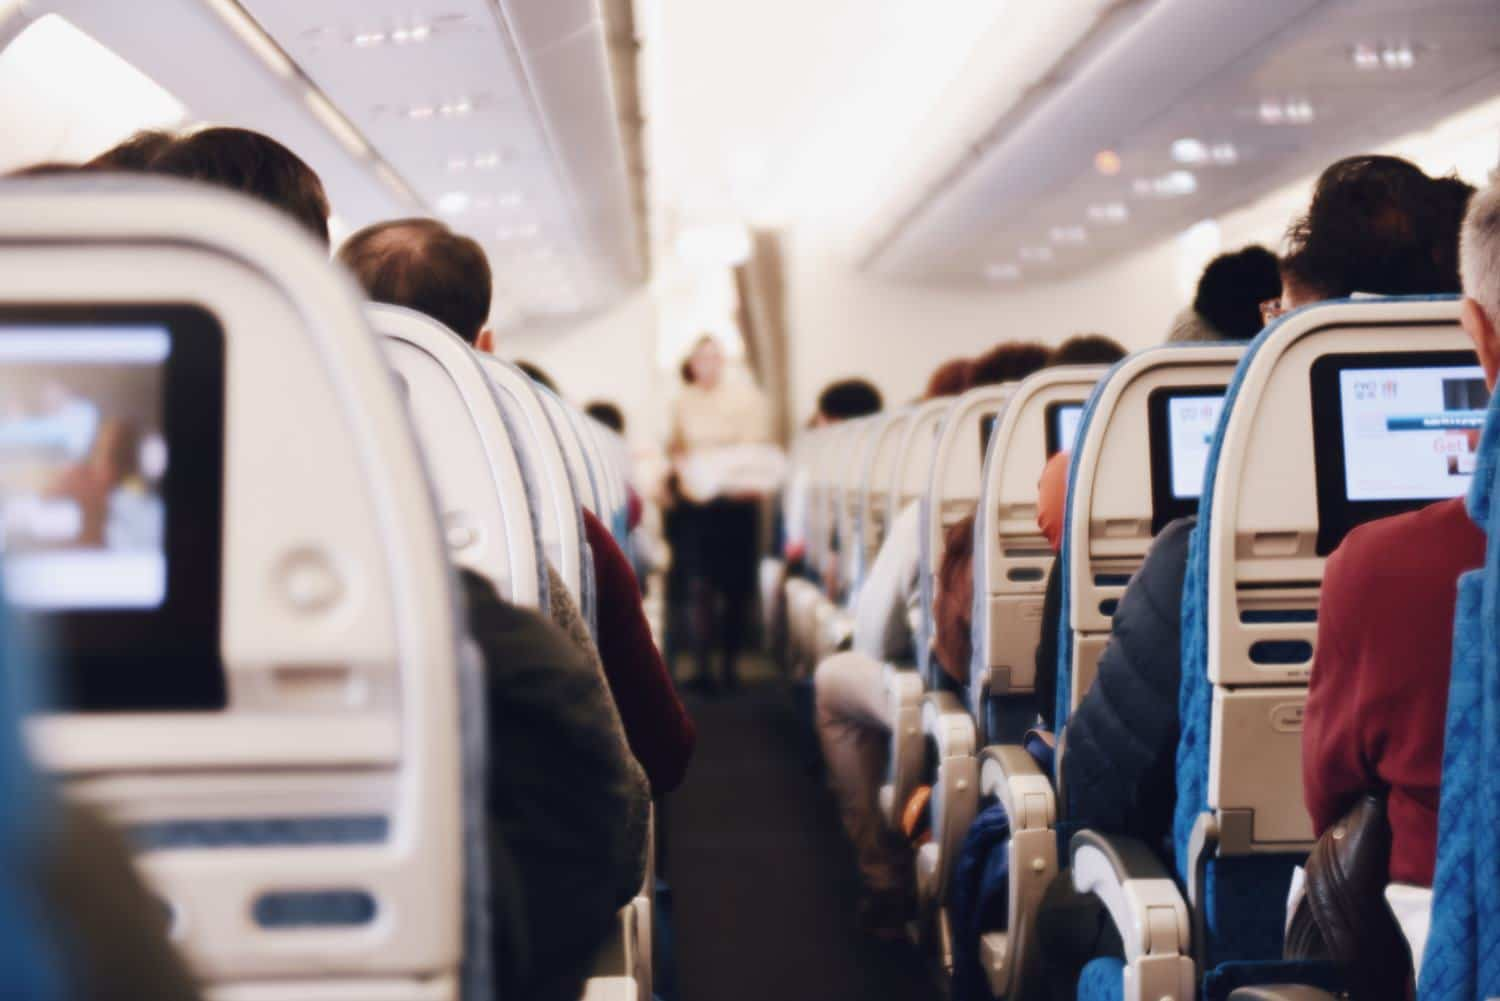 Airplane Air Quality: The Mechanics of the System